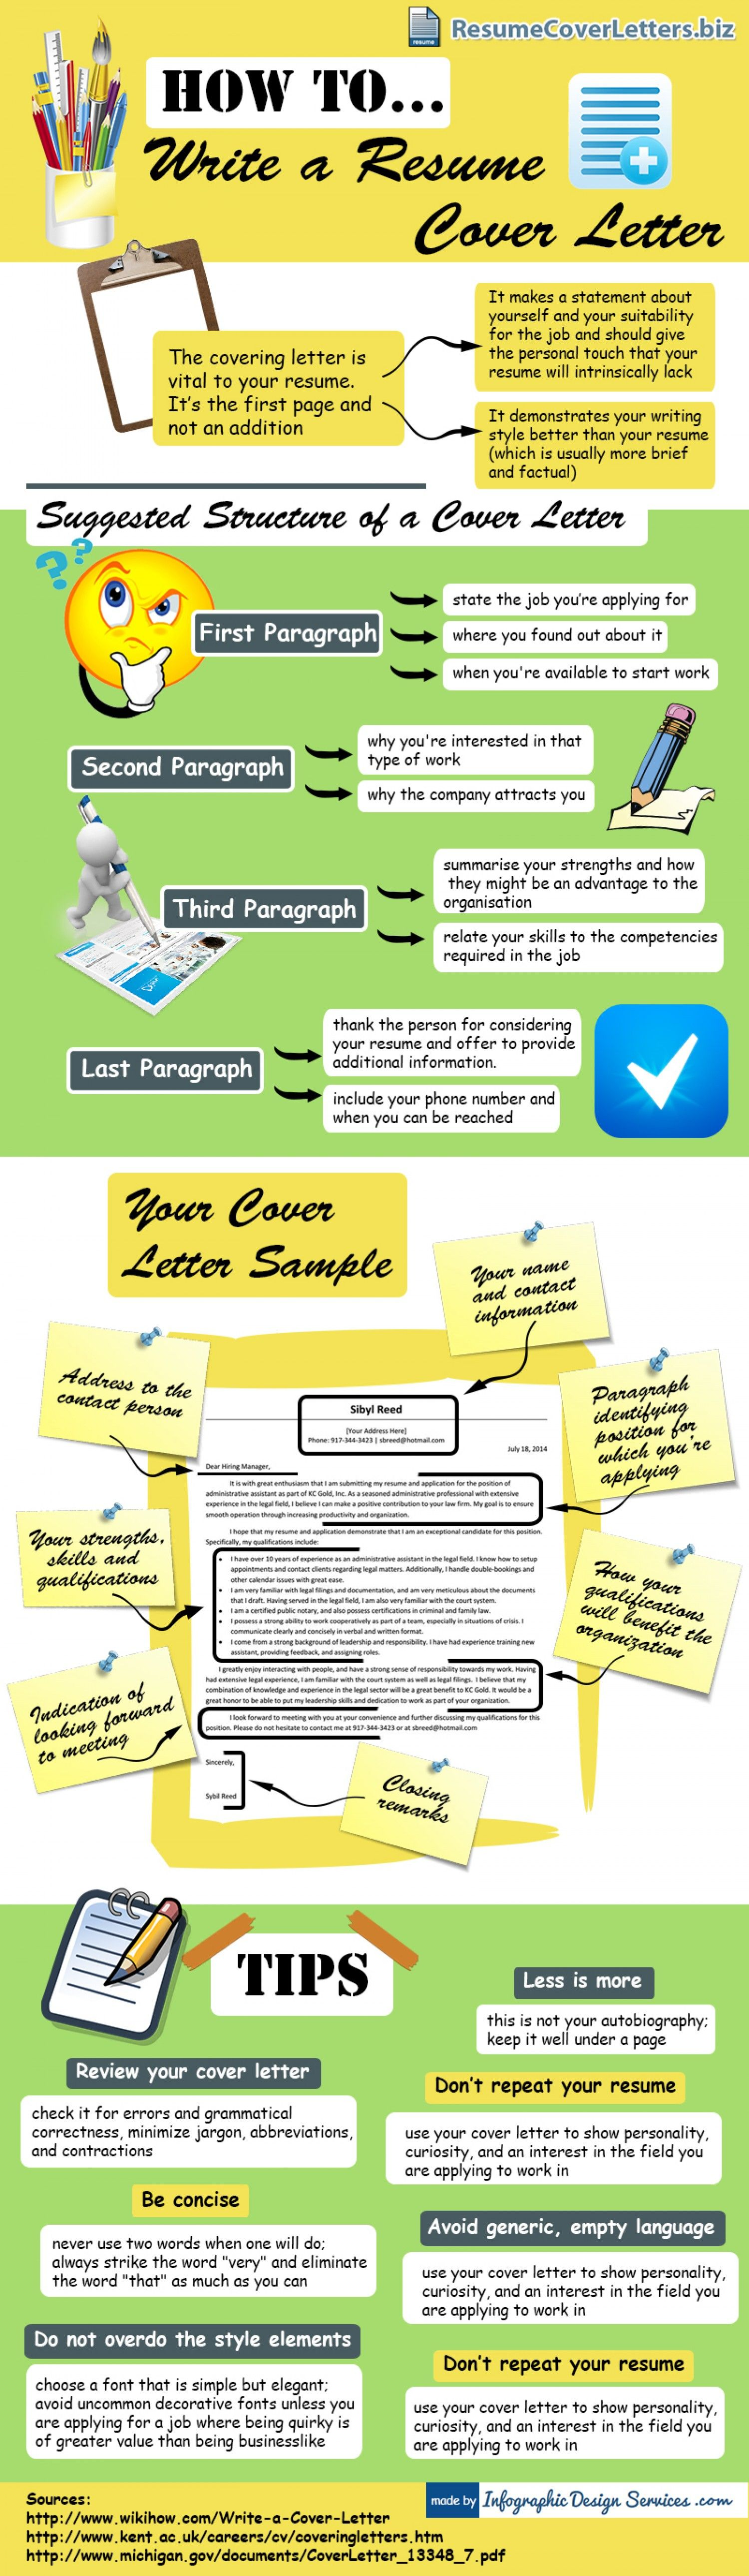 resume cover letter writing tips infographic useful classroom do you need help writing or updating your resume or cover letter follow this step by step guide to writing a great resume or cover letter and get that job